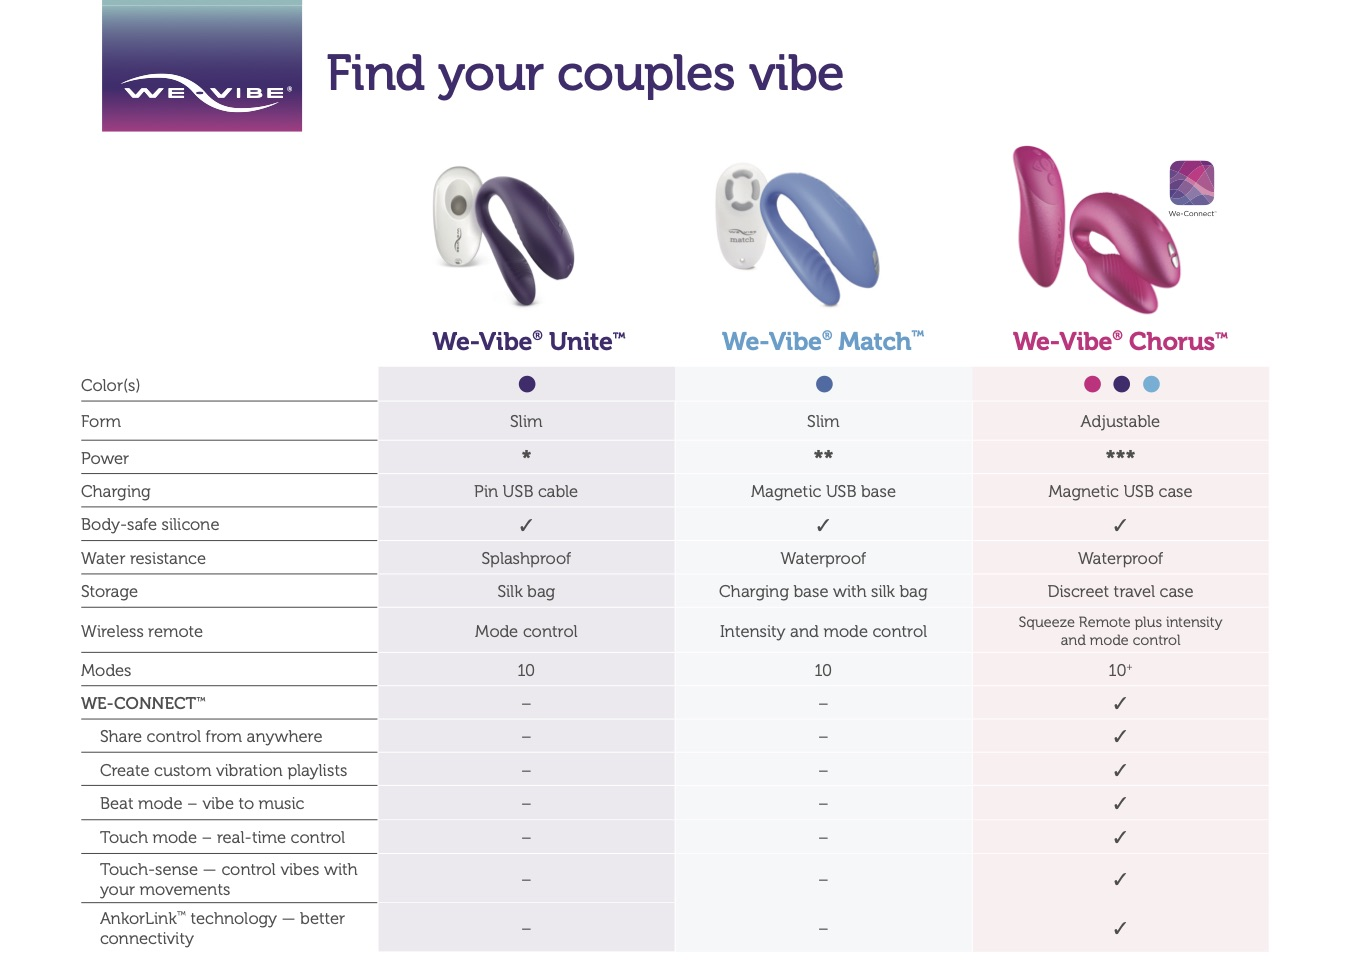 we-vibe-couples-vibrators-sex-toys-unite-match-chorus-comparison-copy.jpg